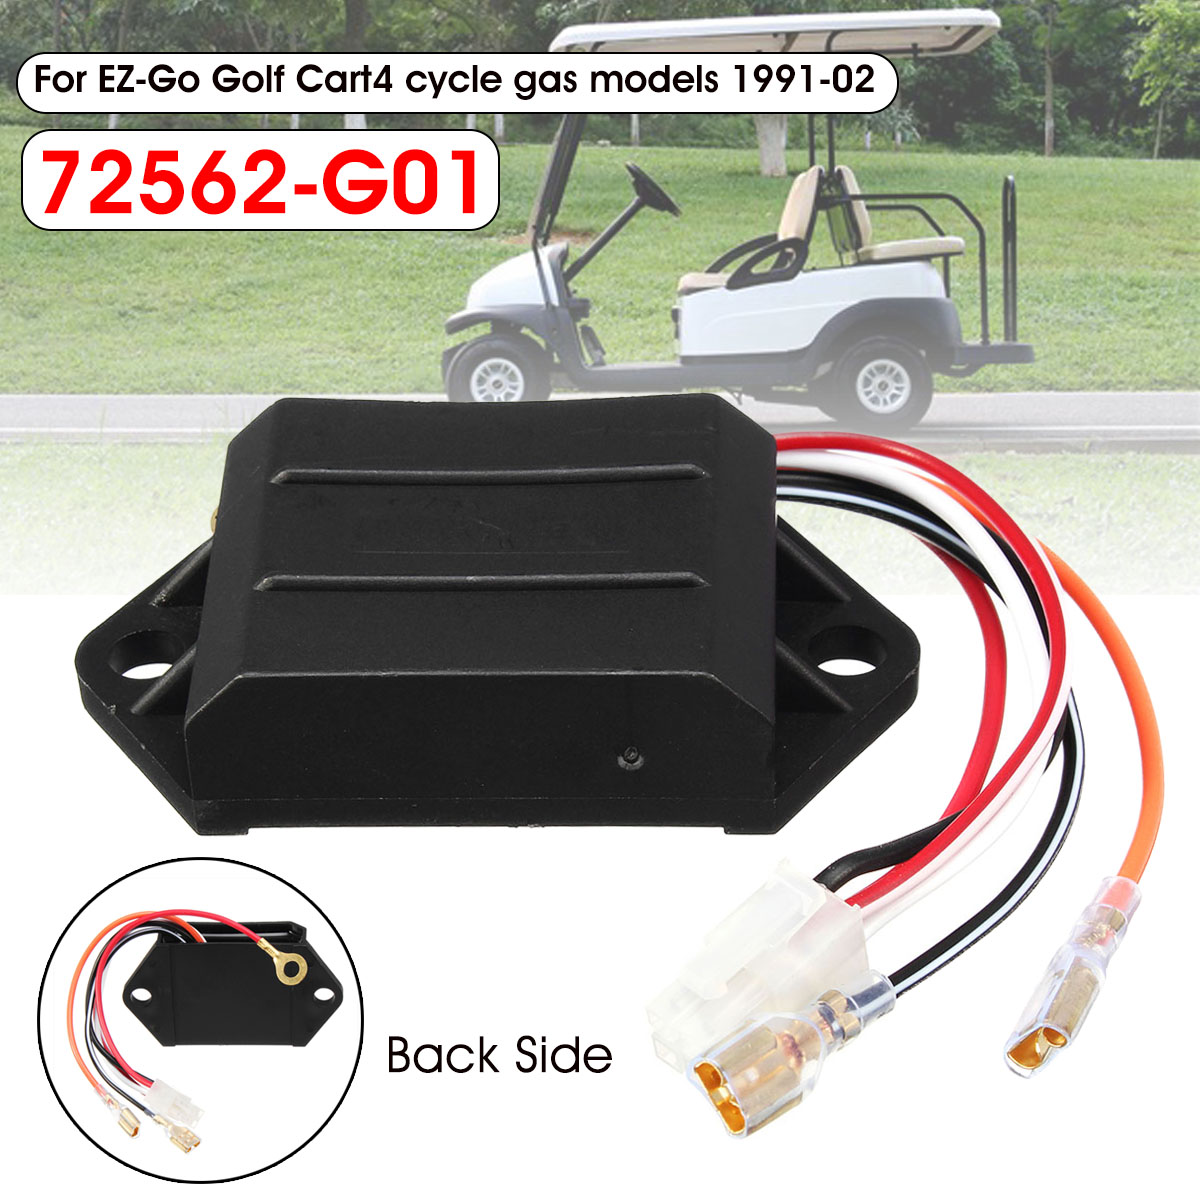 hight resolution of 1992 ezgo ga golf cart wiring diagram